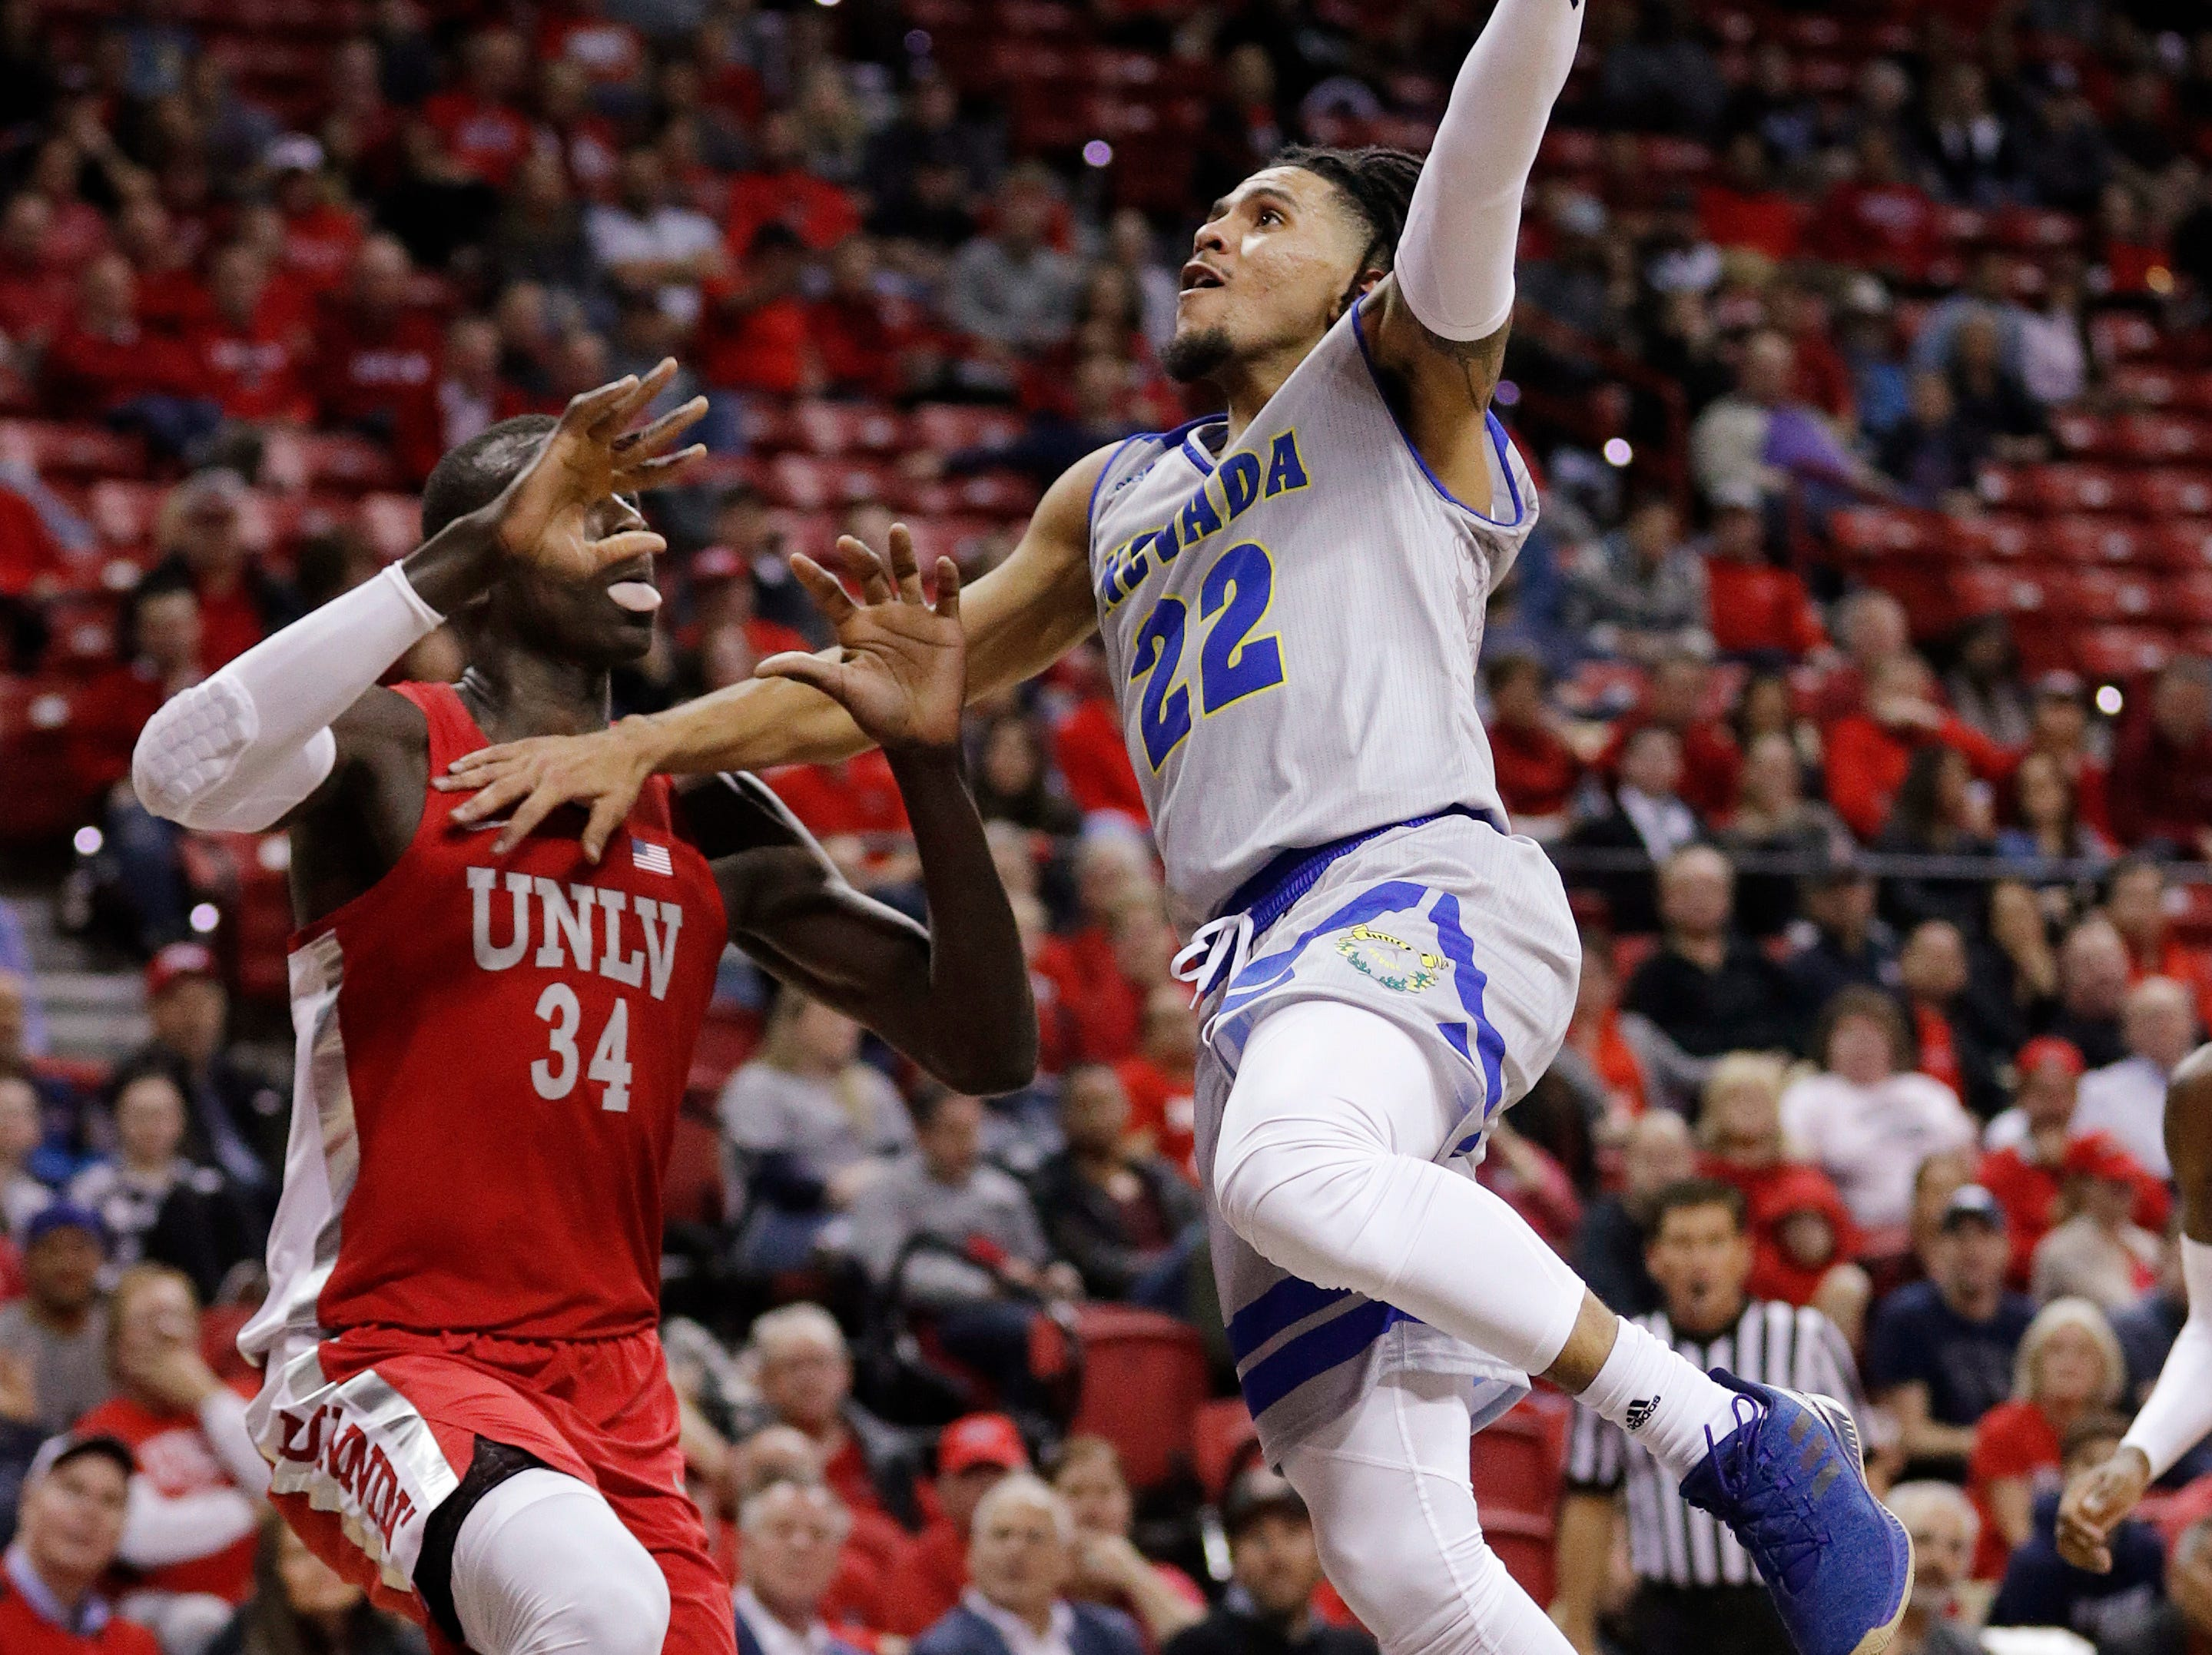 Nevada's Jazz Johnson shoots as UNLV's Cheikh Mbacke Diong defends during the second half of an NCAA college basketball game Tuesday, Jan. 29, 2019, in Las Vegas. (AP Photo/John Locher)